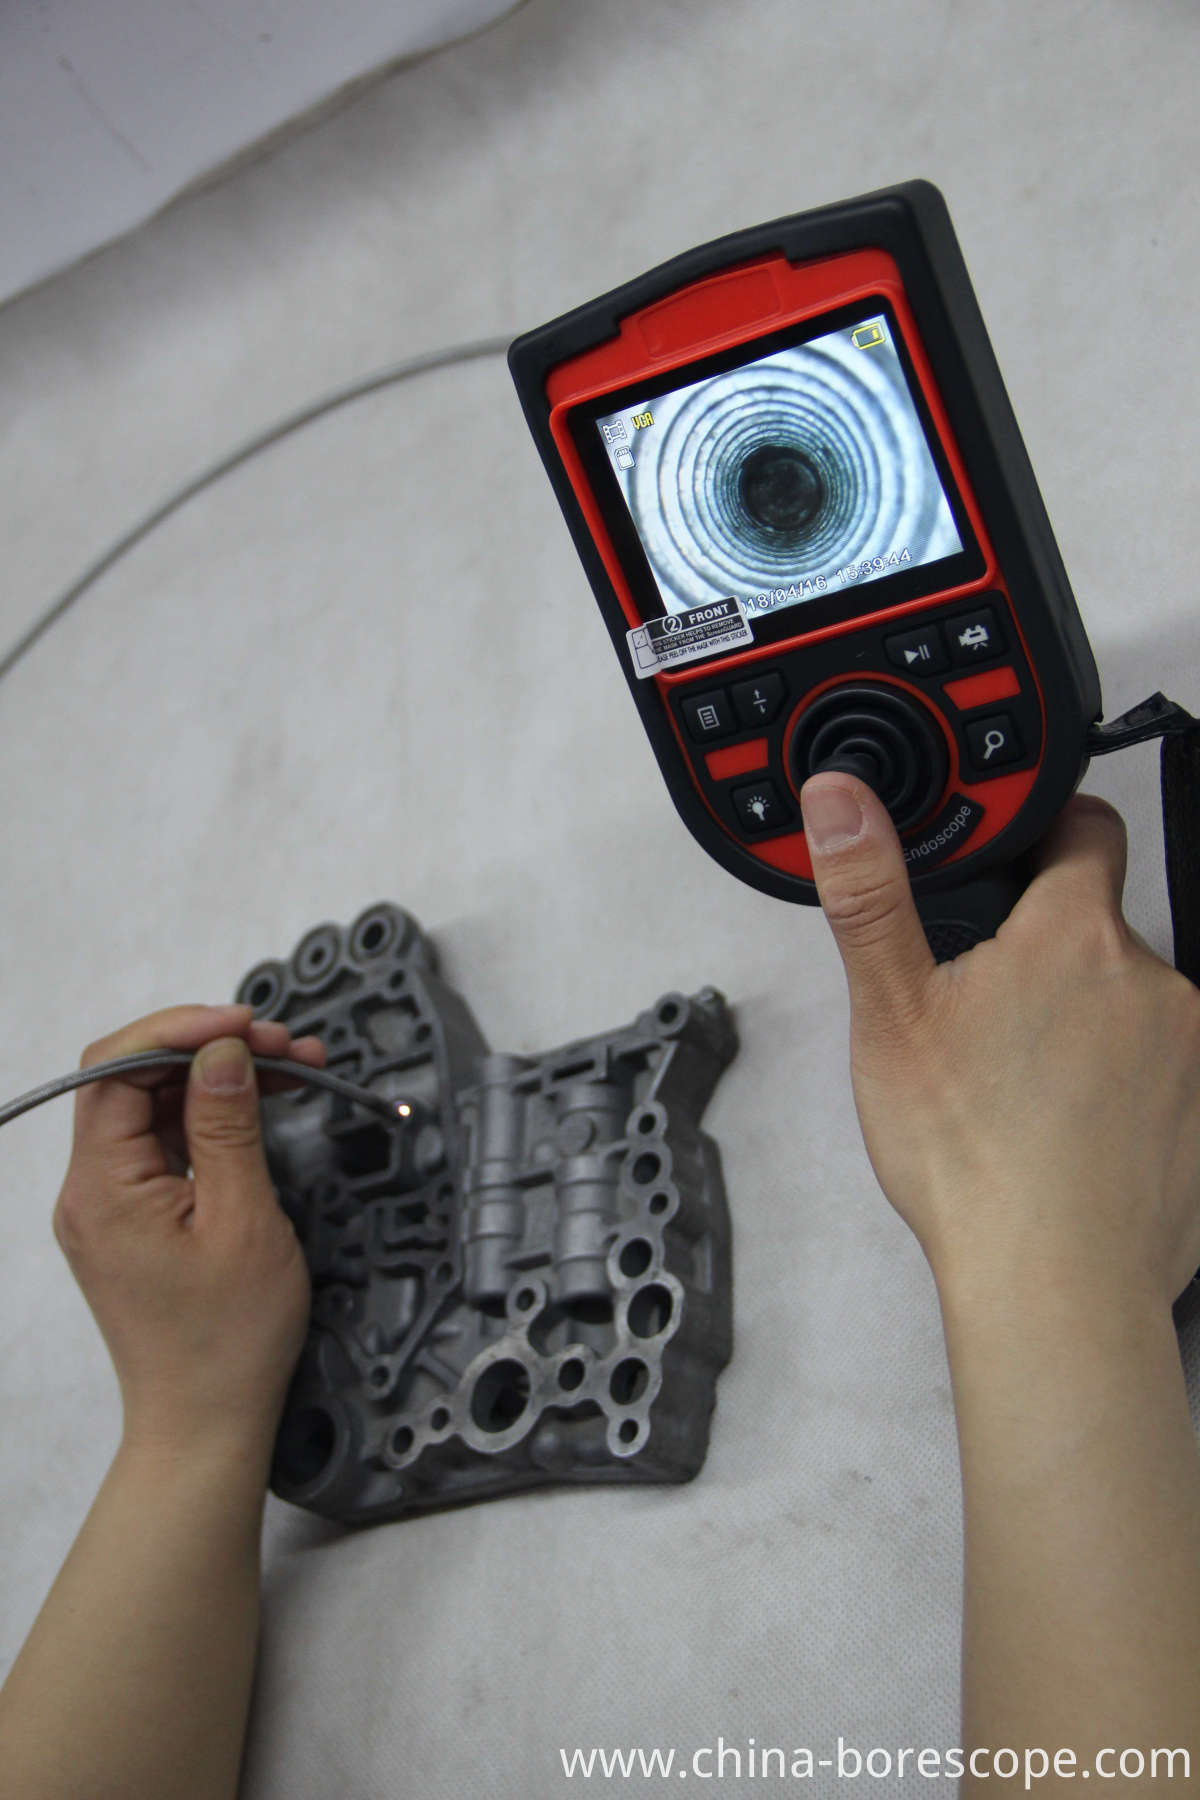 Portable vidoe borescope